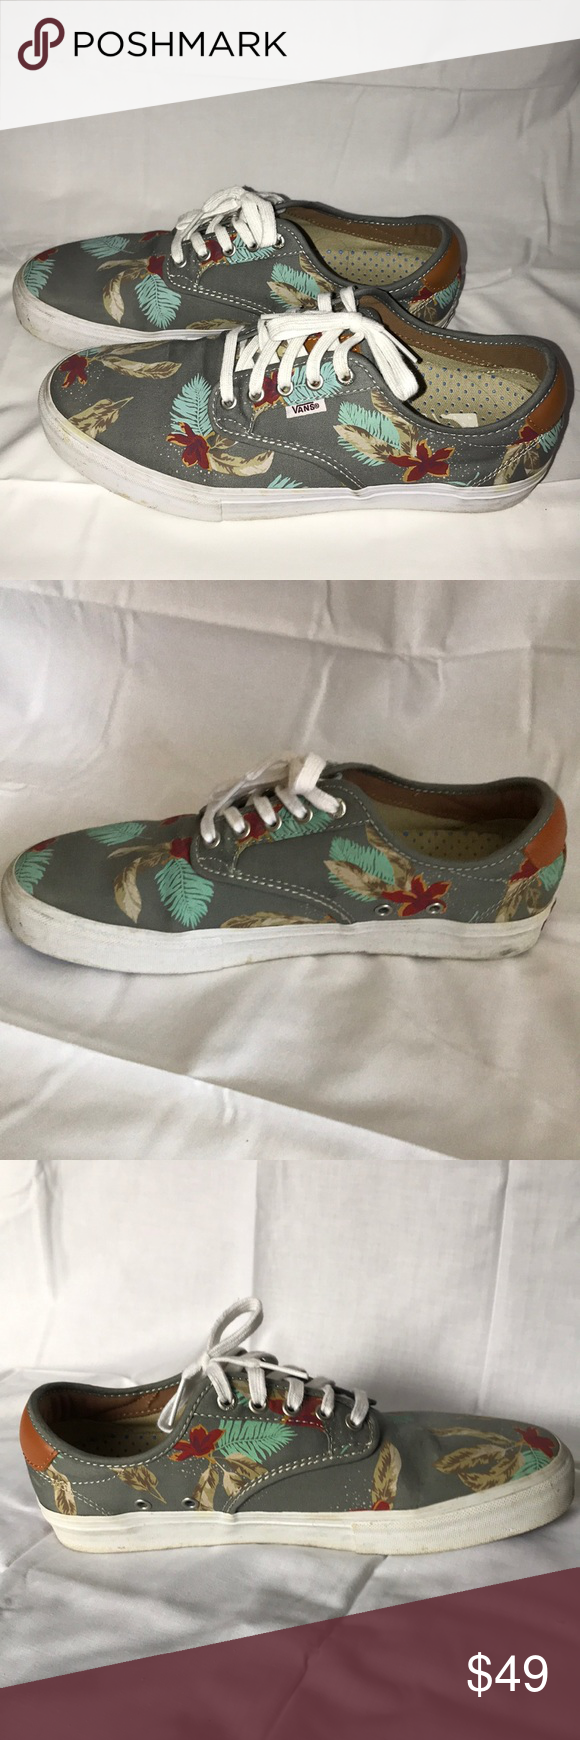 08053b16fb77 VANS Chima Ferguson Pro - Men Size 10 Aloha Light Gray Men s Skateboard  Shoes •Limited Edition •Excellent Condition •Soles of both shoes have  scuffs and ...